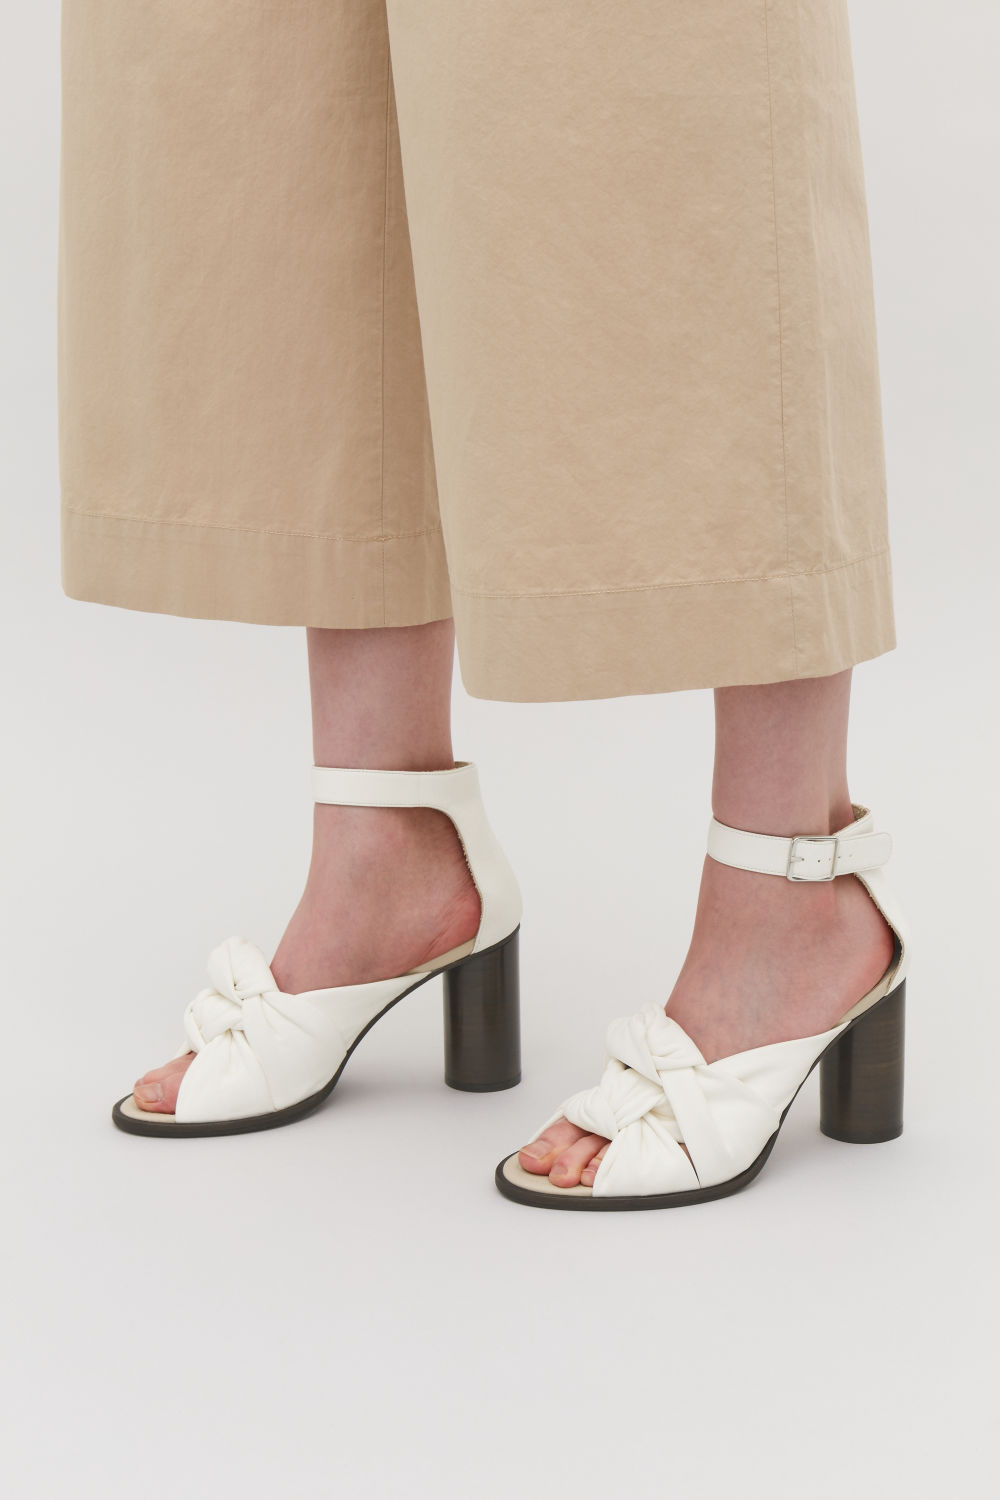 Shoes - Women - COS GB   Leather sandals, Hiking shoes